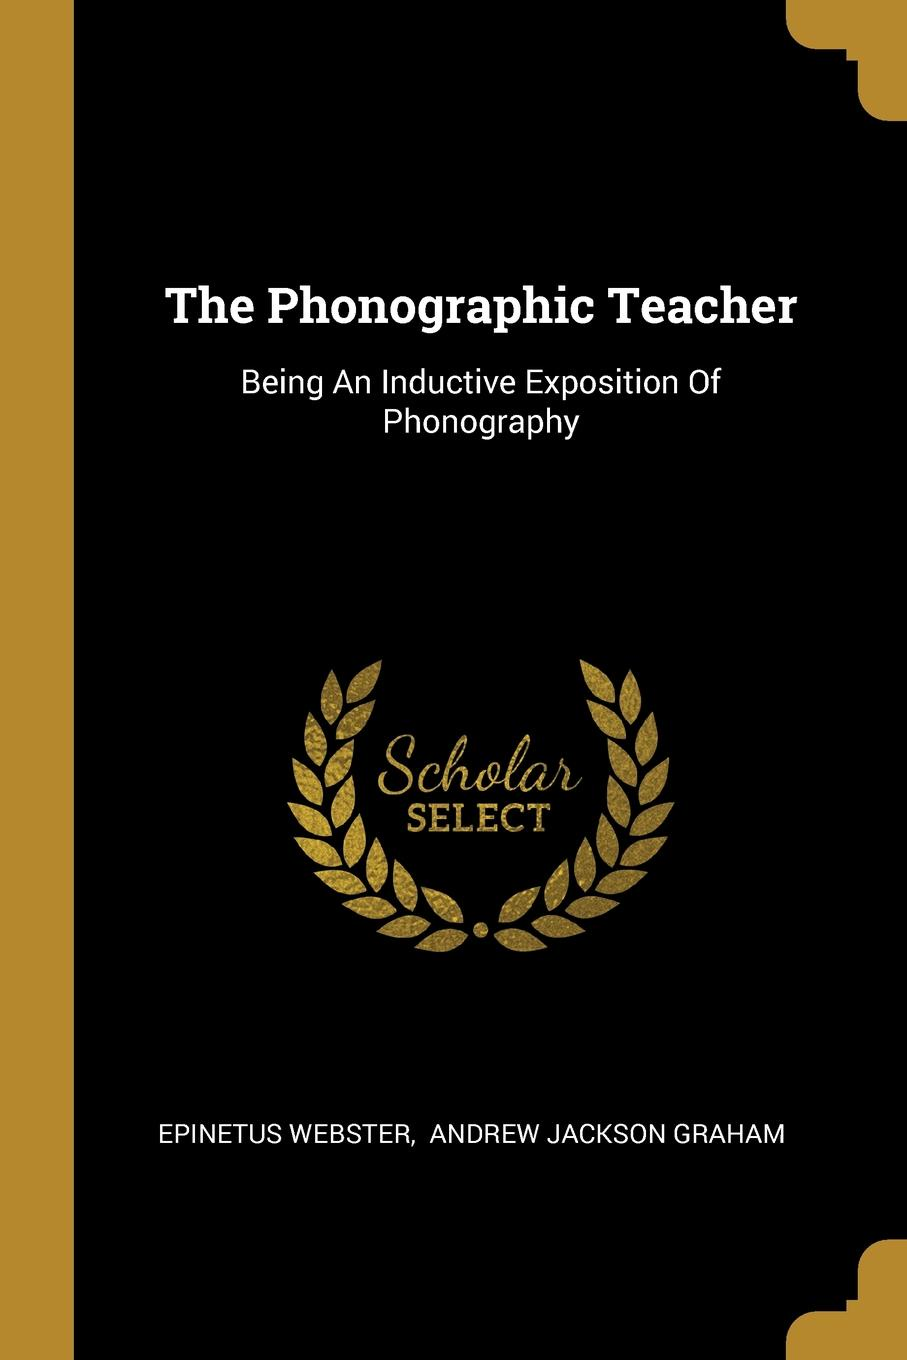 Epinetus Webster The Phonographic Teacher. Being An Inductive Exposition Of Phonography epinetus webster the phonographic teacher being an inductive exposition of phonography